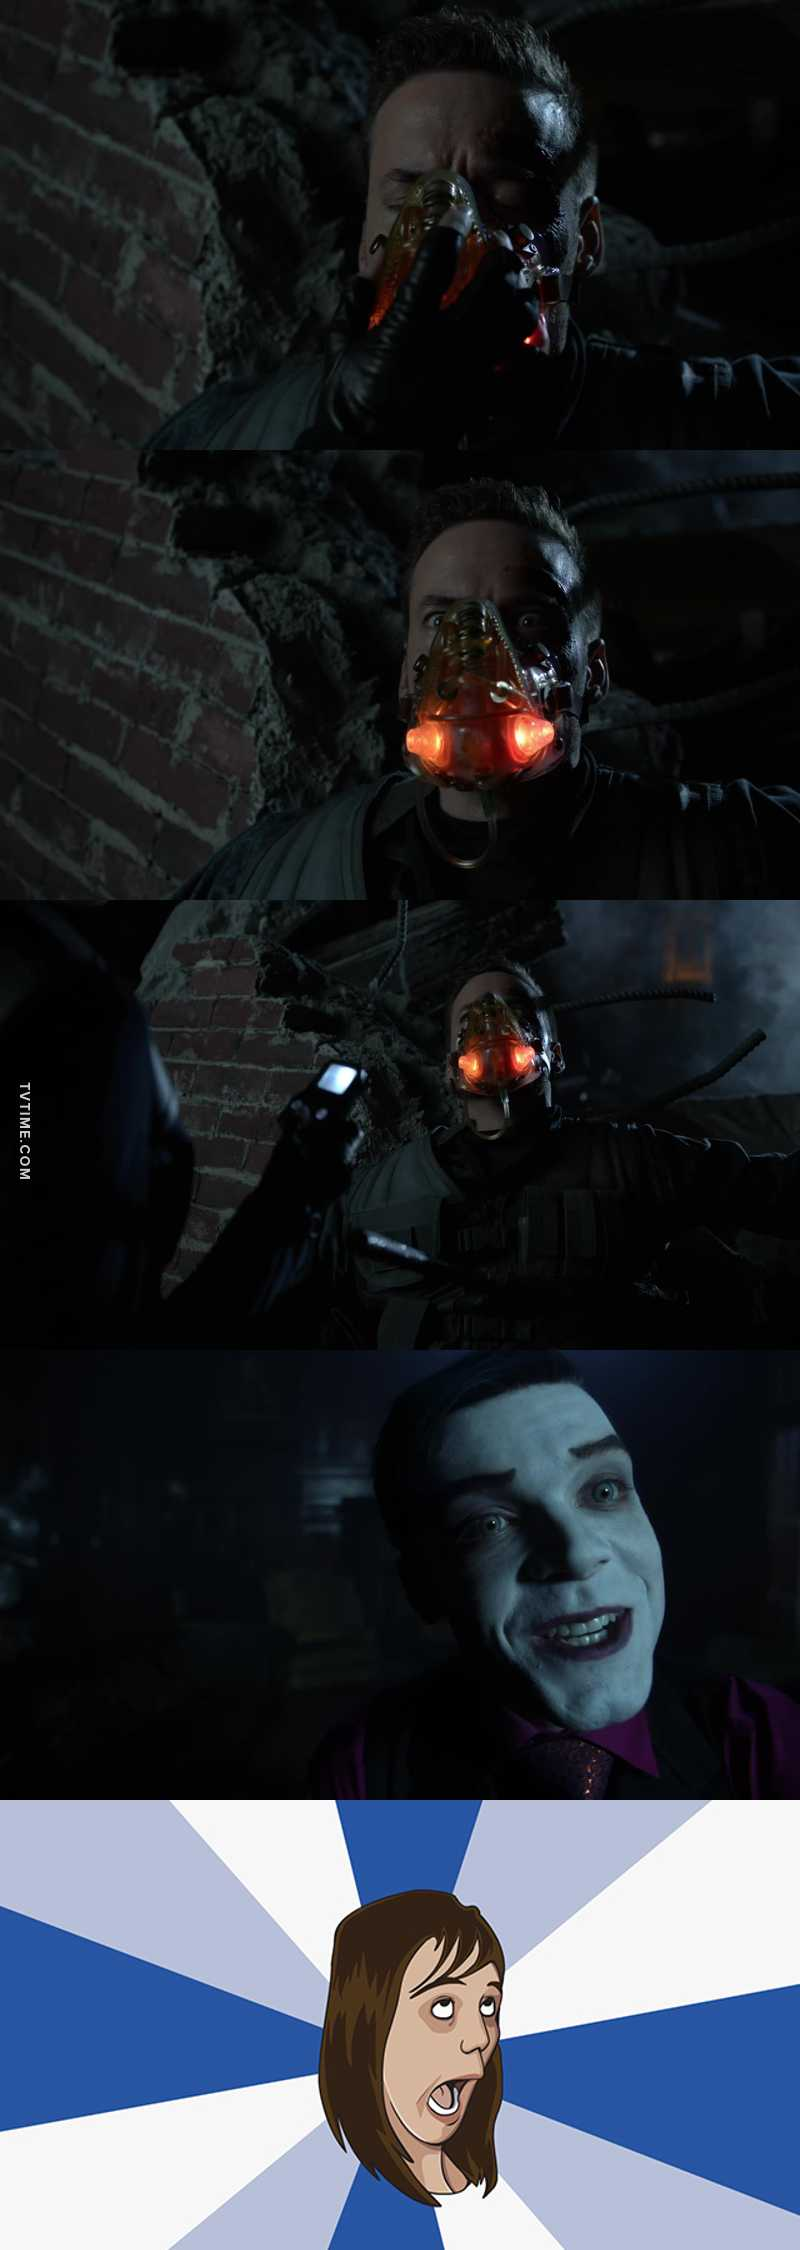 First the joker, and now bane. This is getting interesting. 😏😏😏👏👏👏 they probably setting up for series finale.